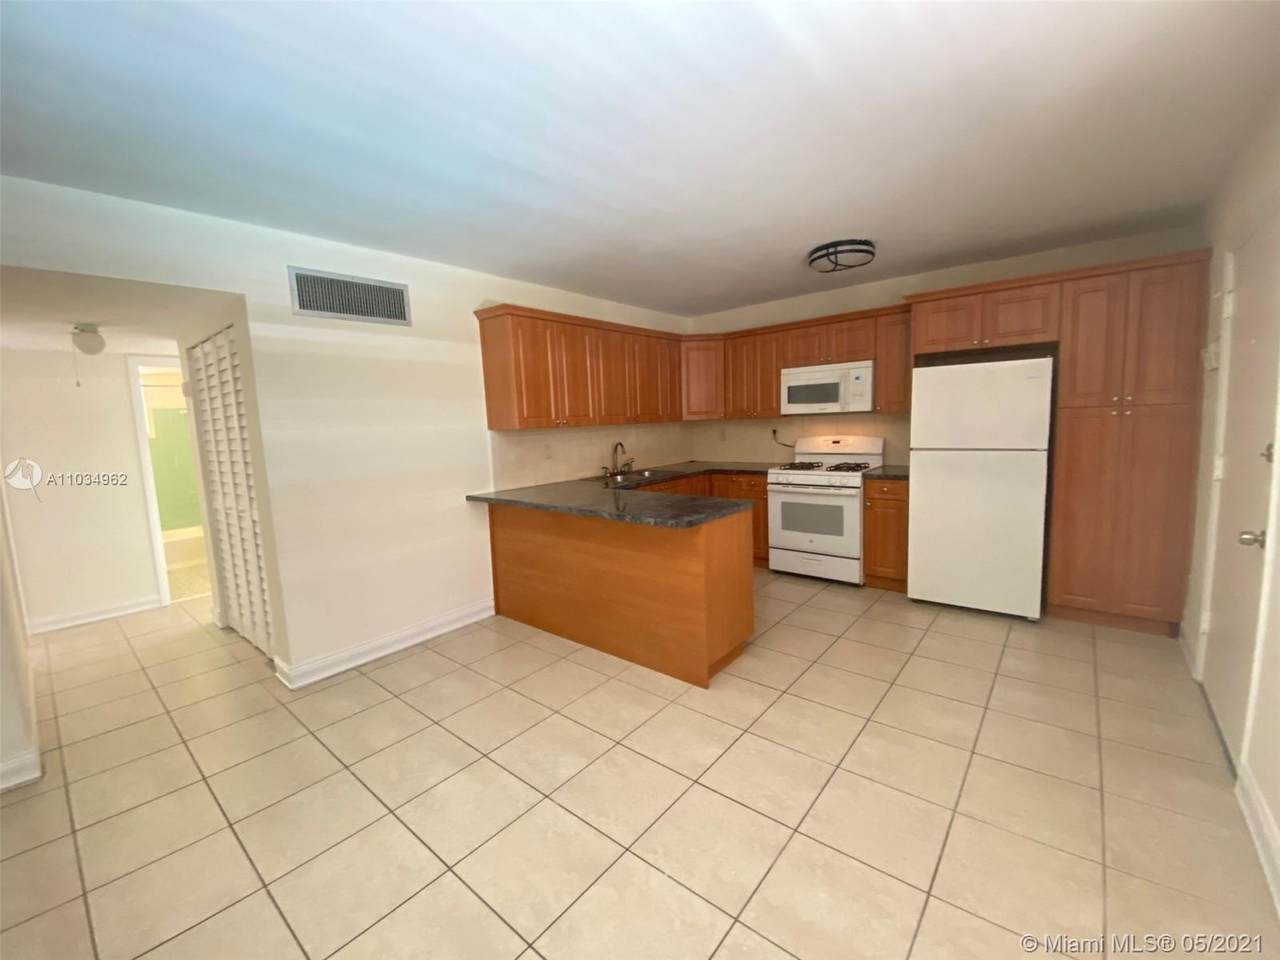 465 Royal Poinciana Blvd - Photo 1